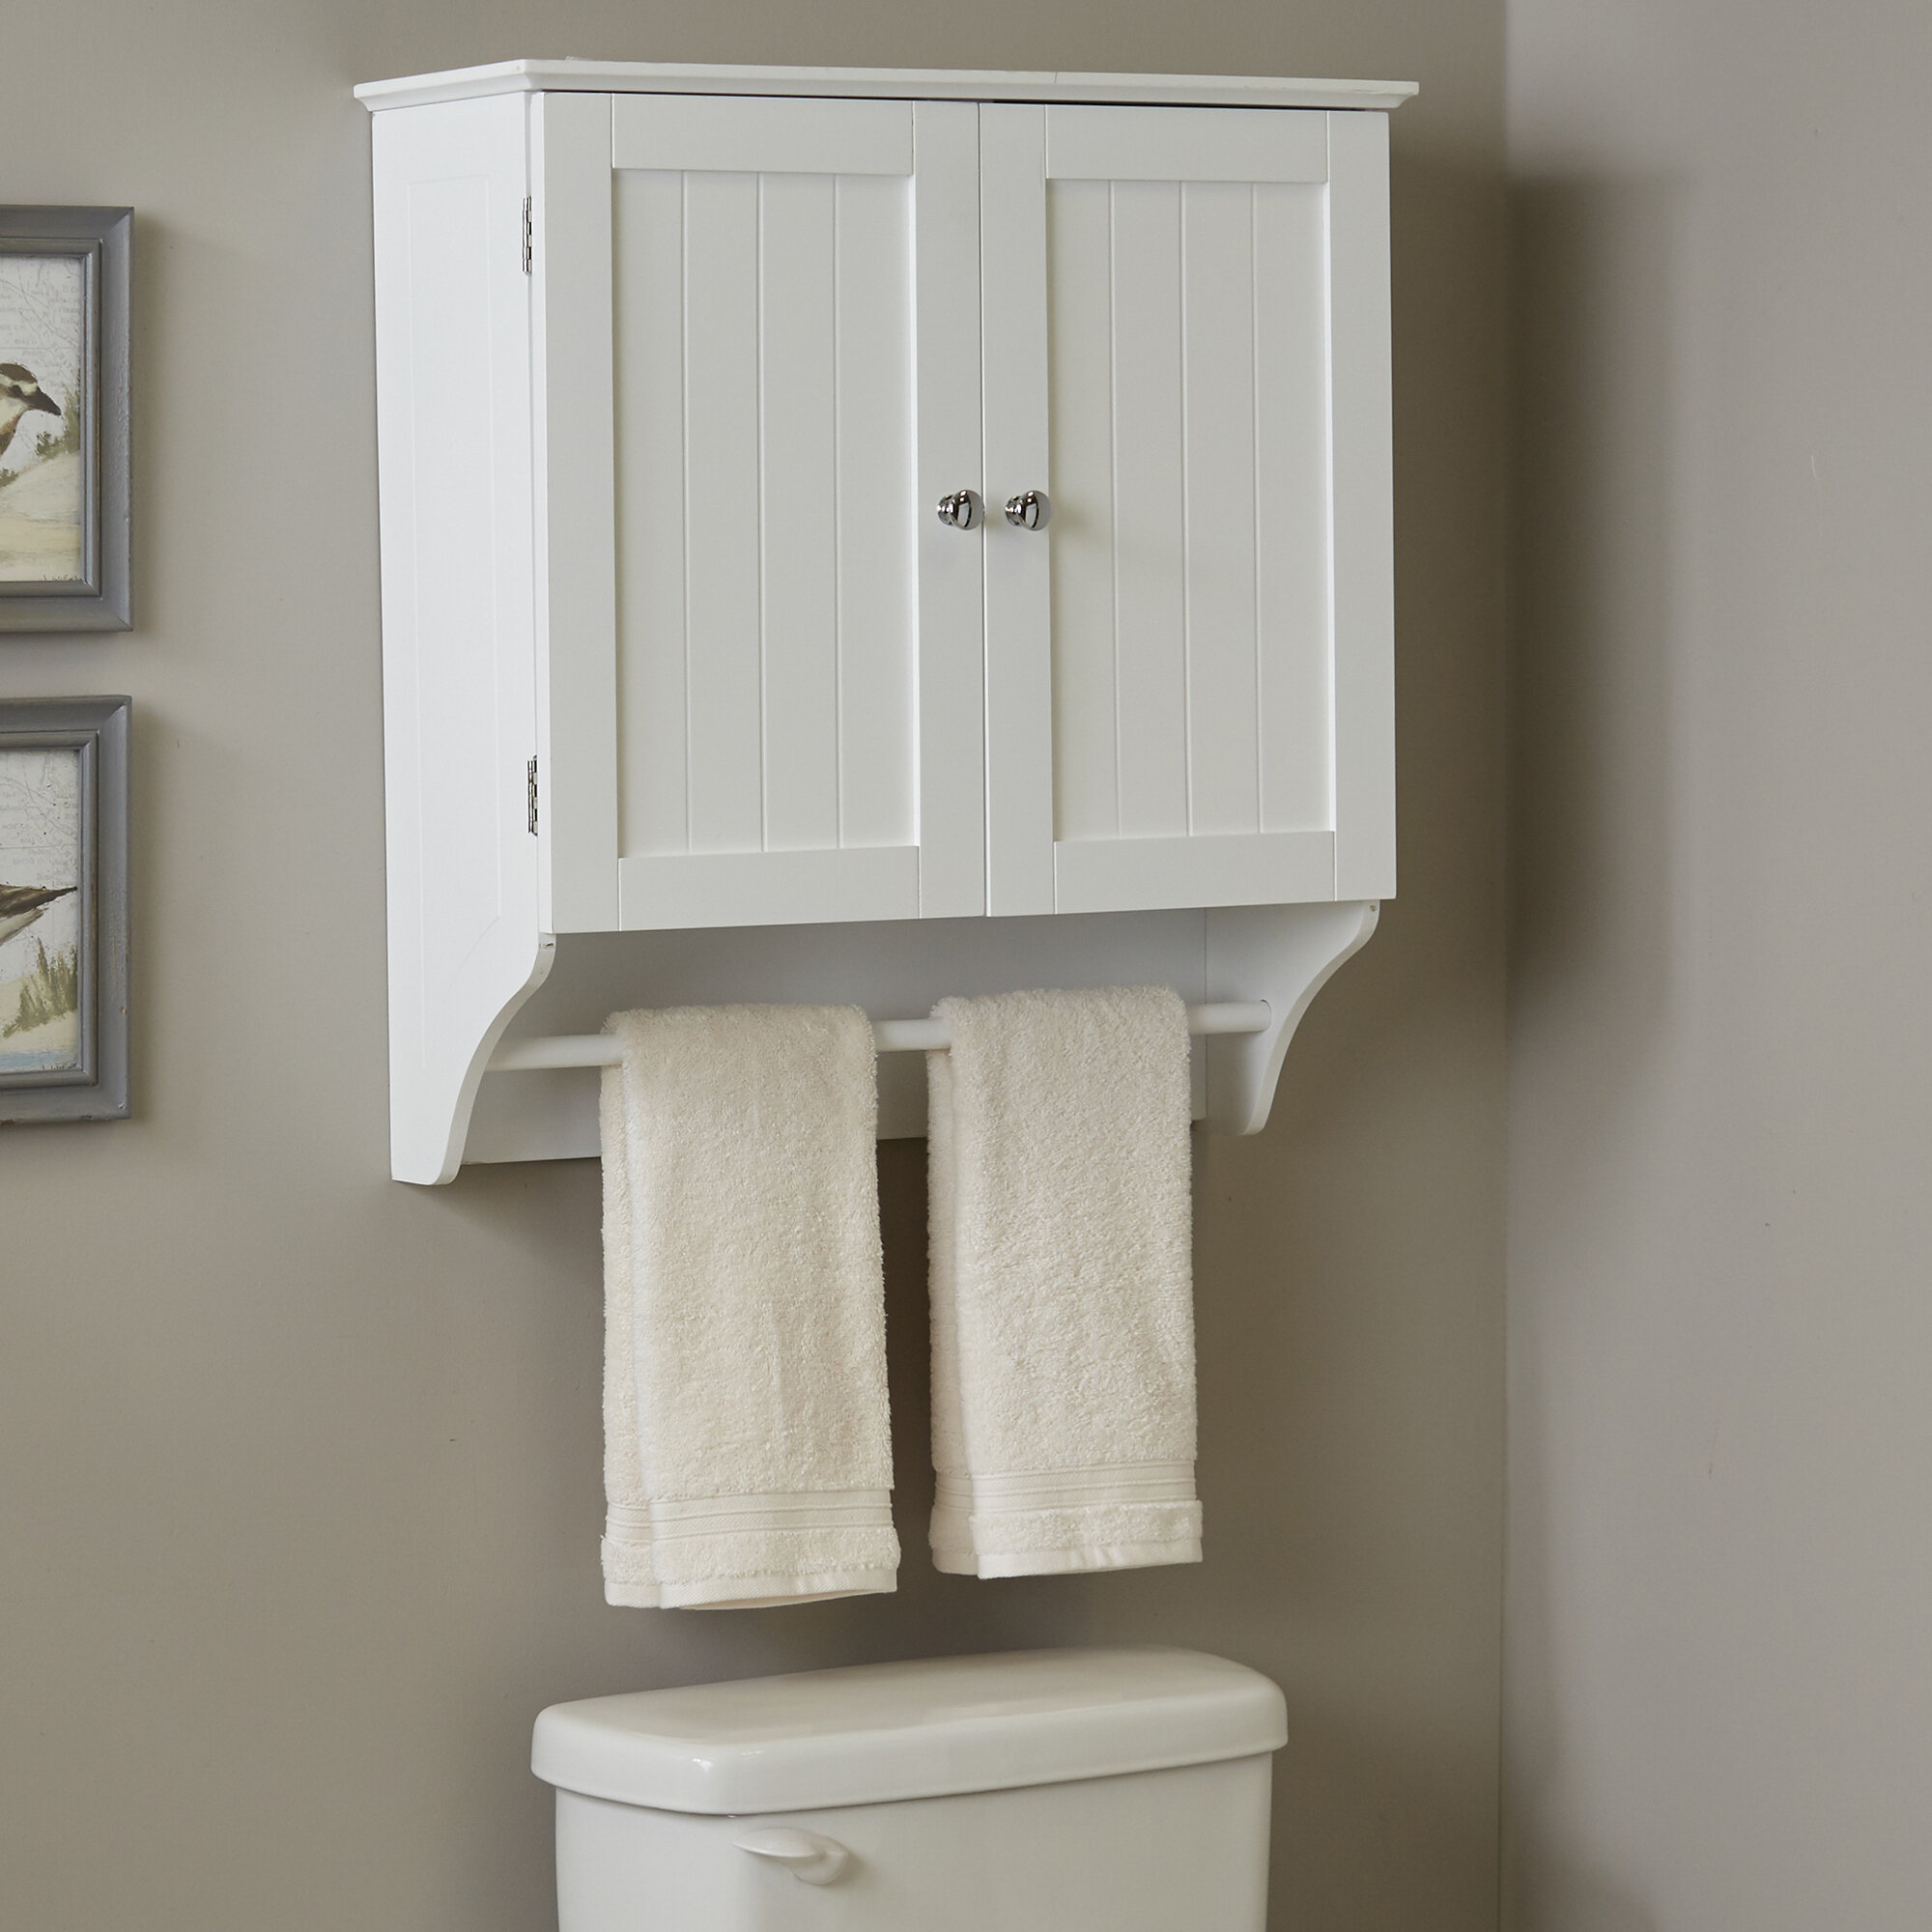 large cabinets for top storage wooden bathroom cabinet ideas